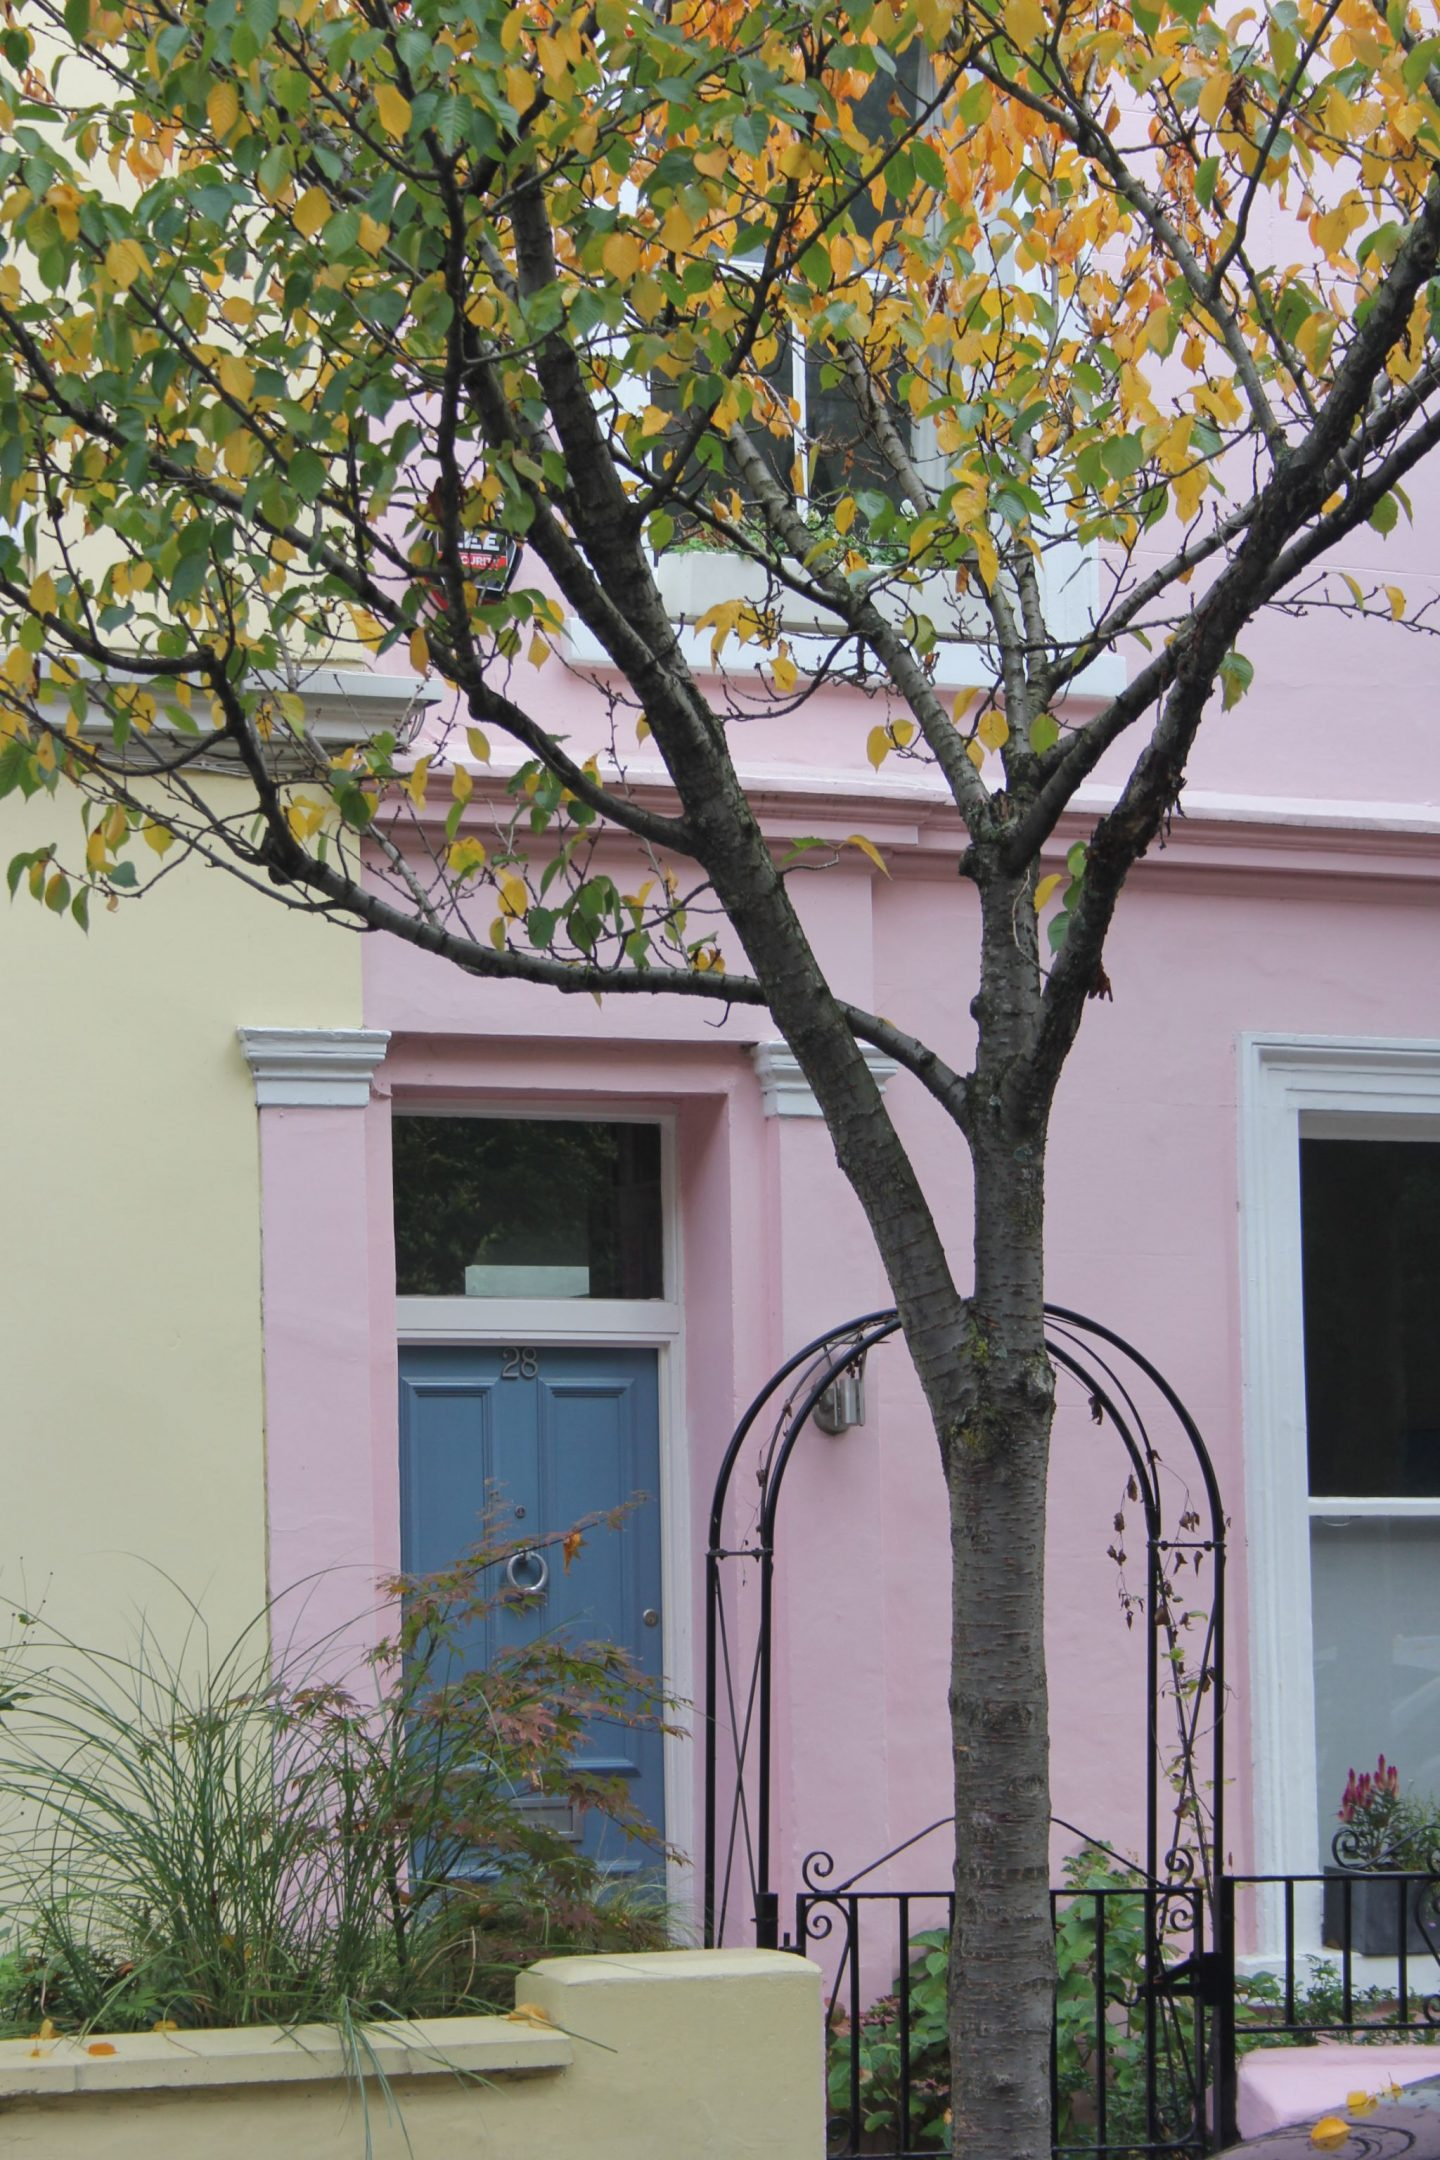 French blue paint on a front door of a pastel row house. Hello Lovely Studio. Come tour these gorgeous front doors in Notting Hill and Holland Park...certainly lovely indeed. Curb appeal and Paint Color Inspiration. Lovely London Doors & Paint Color Ideas!